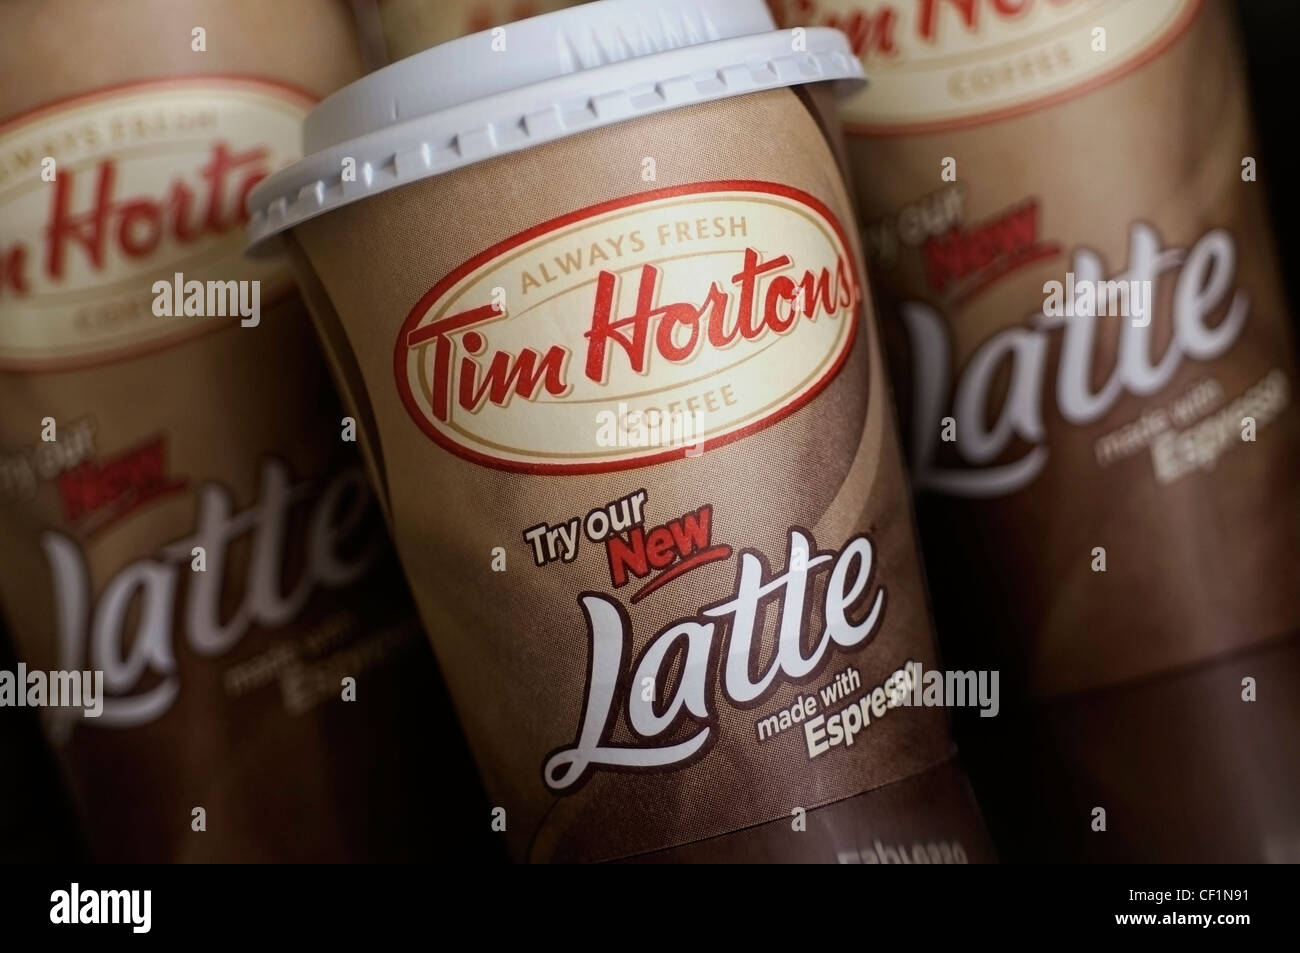 Coffee Cups, Tim Hortons Latte - Stock Image